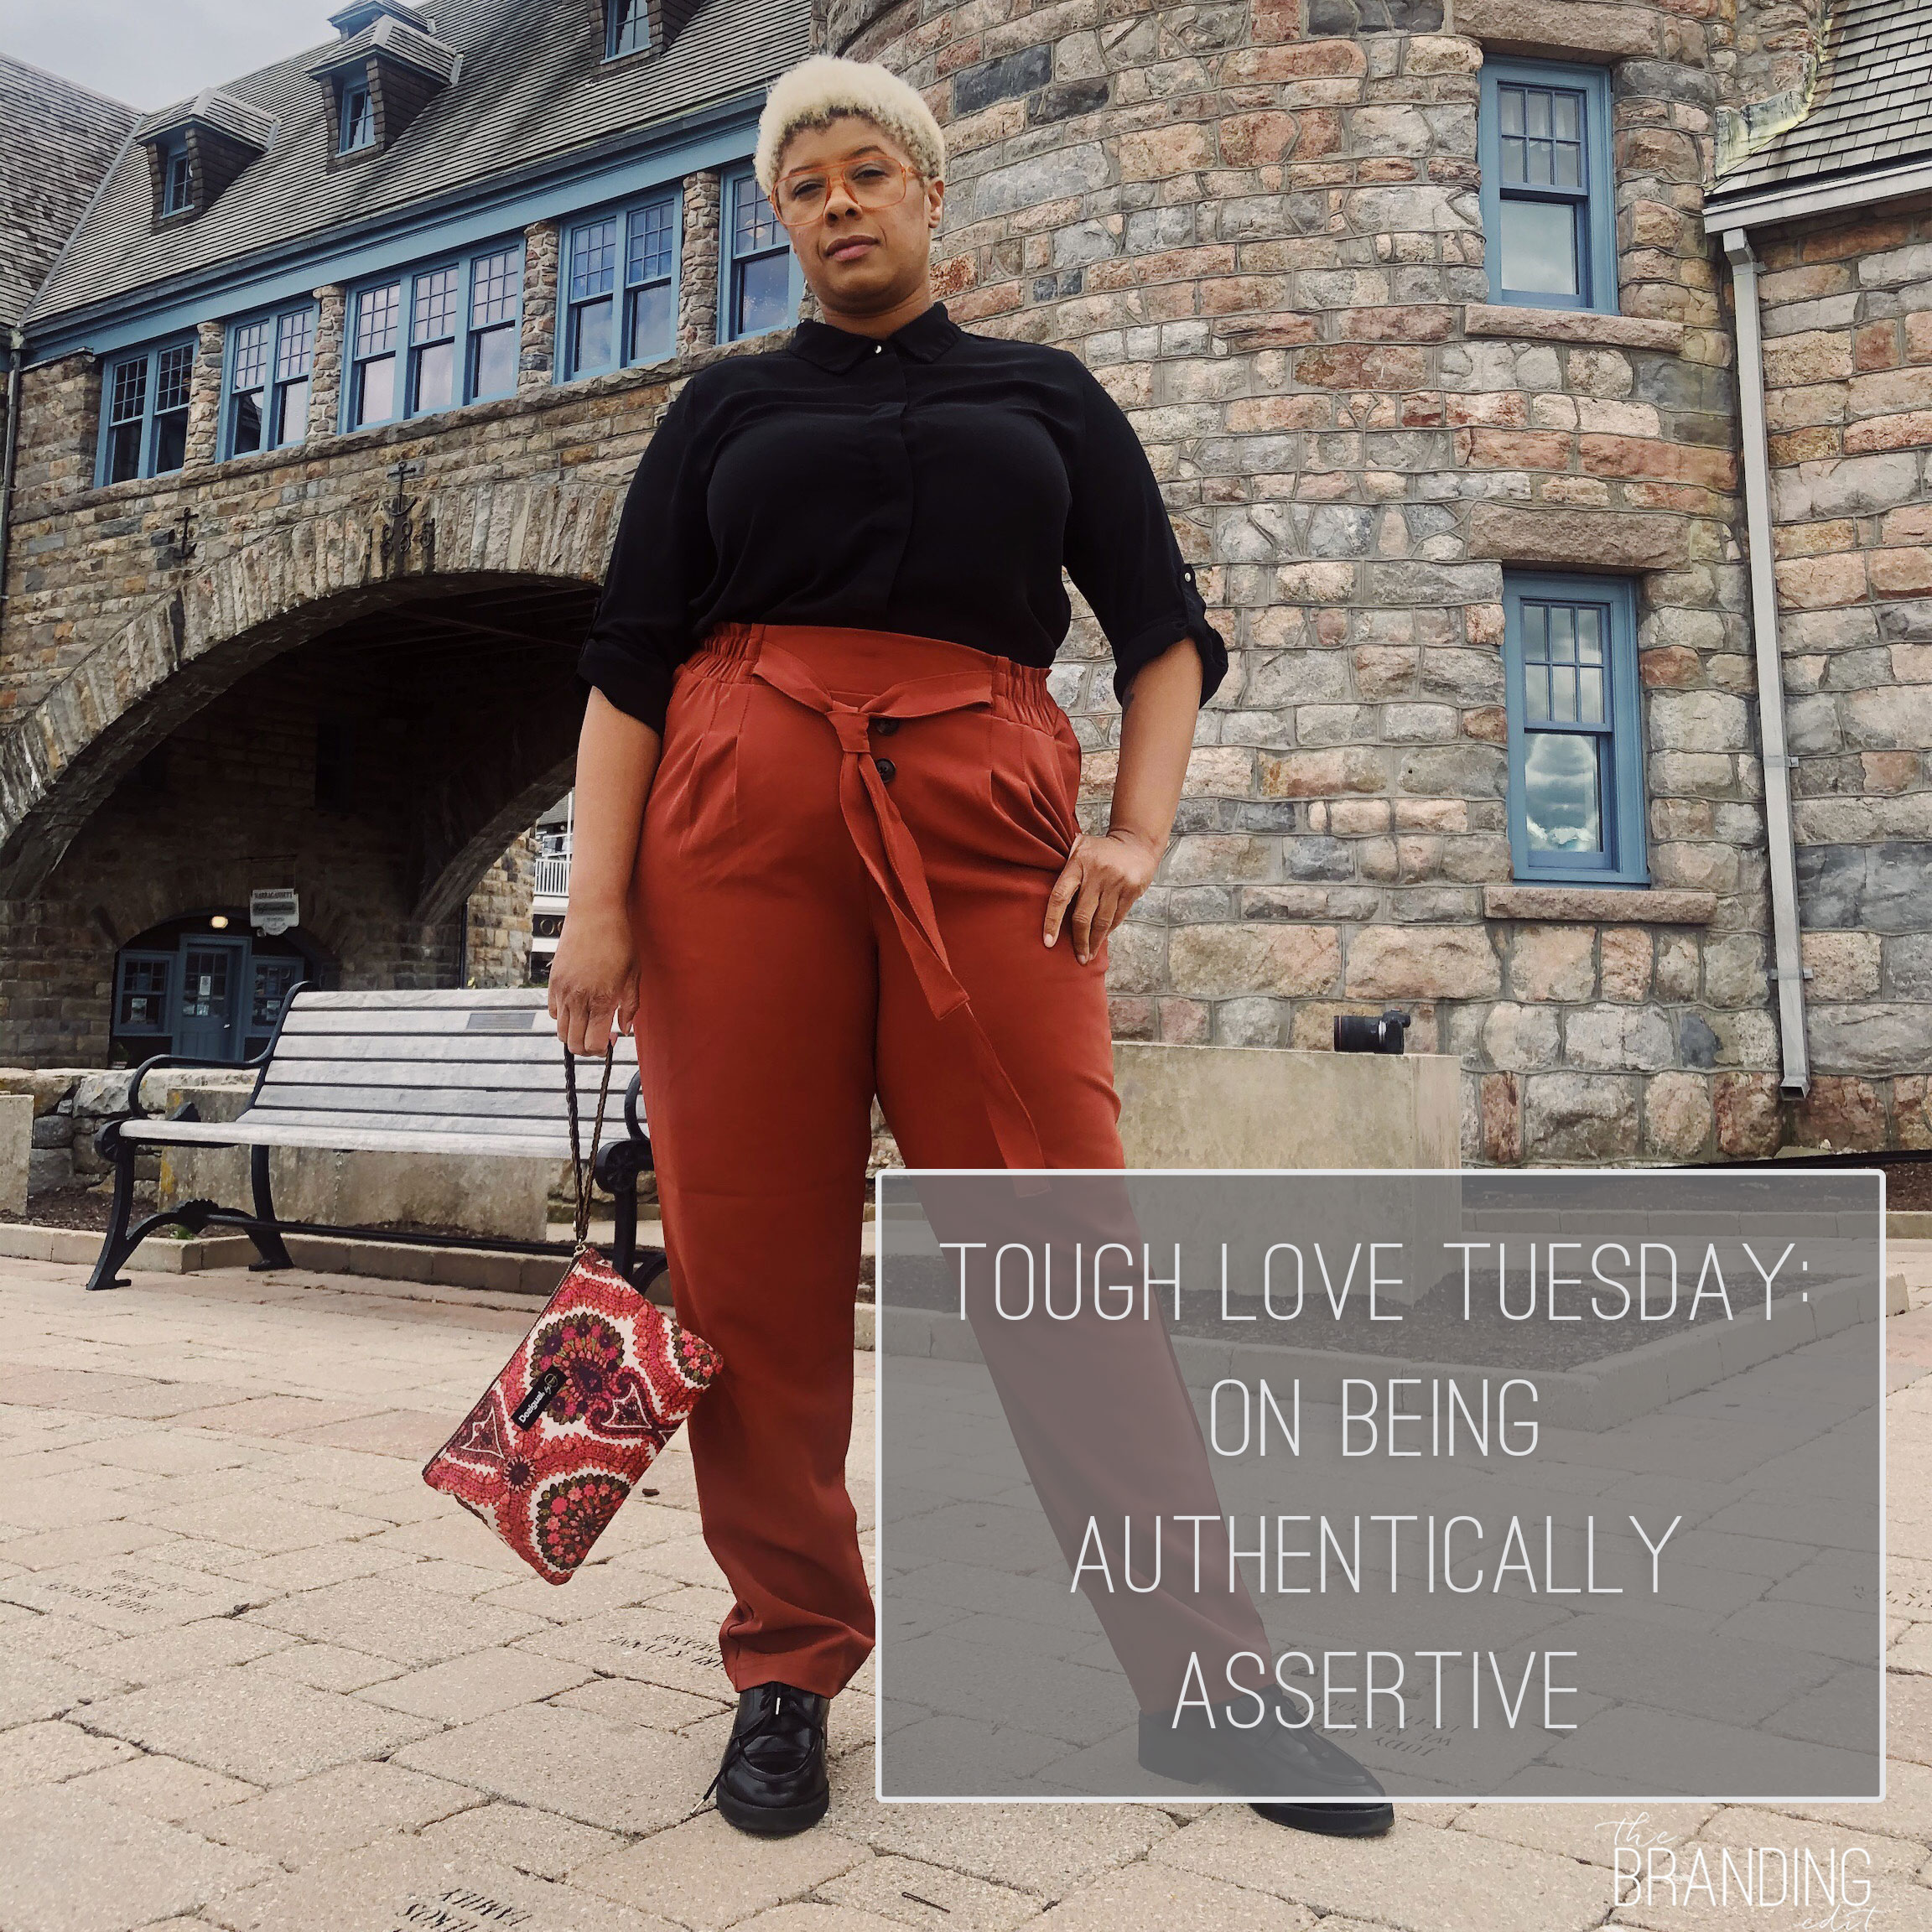 Tough-Love-Tuesday--On-Being-Authentically-Assertive.jpg